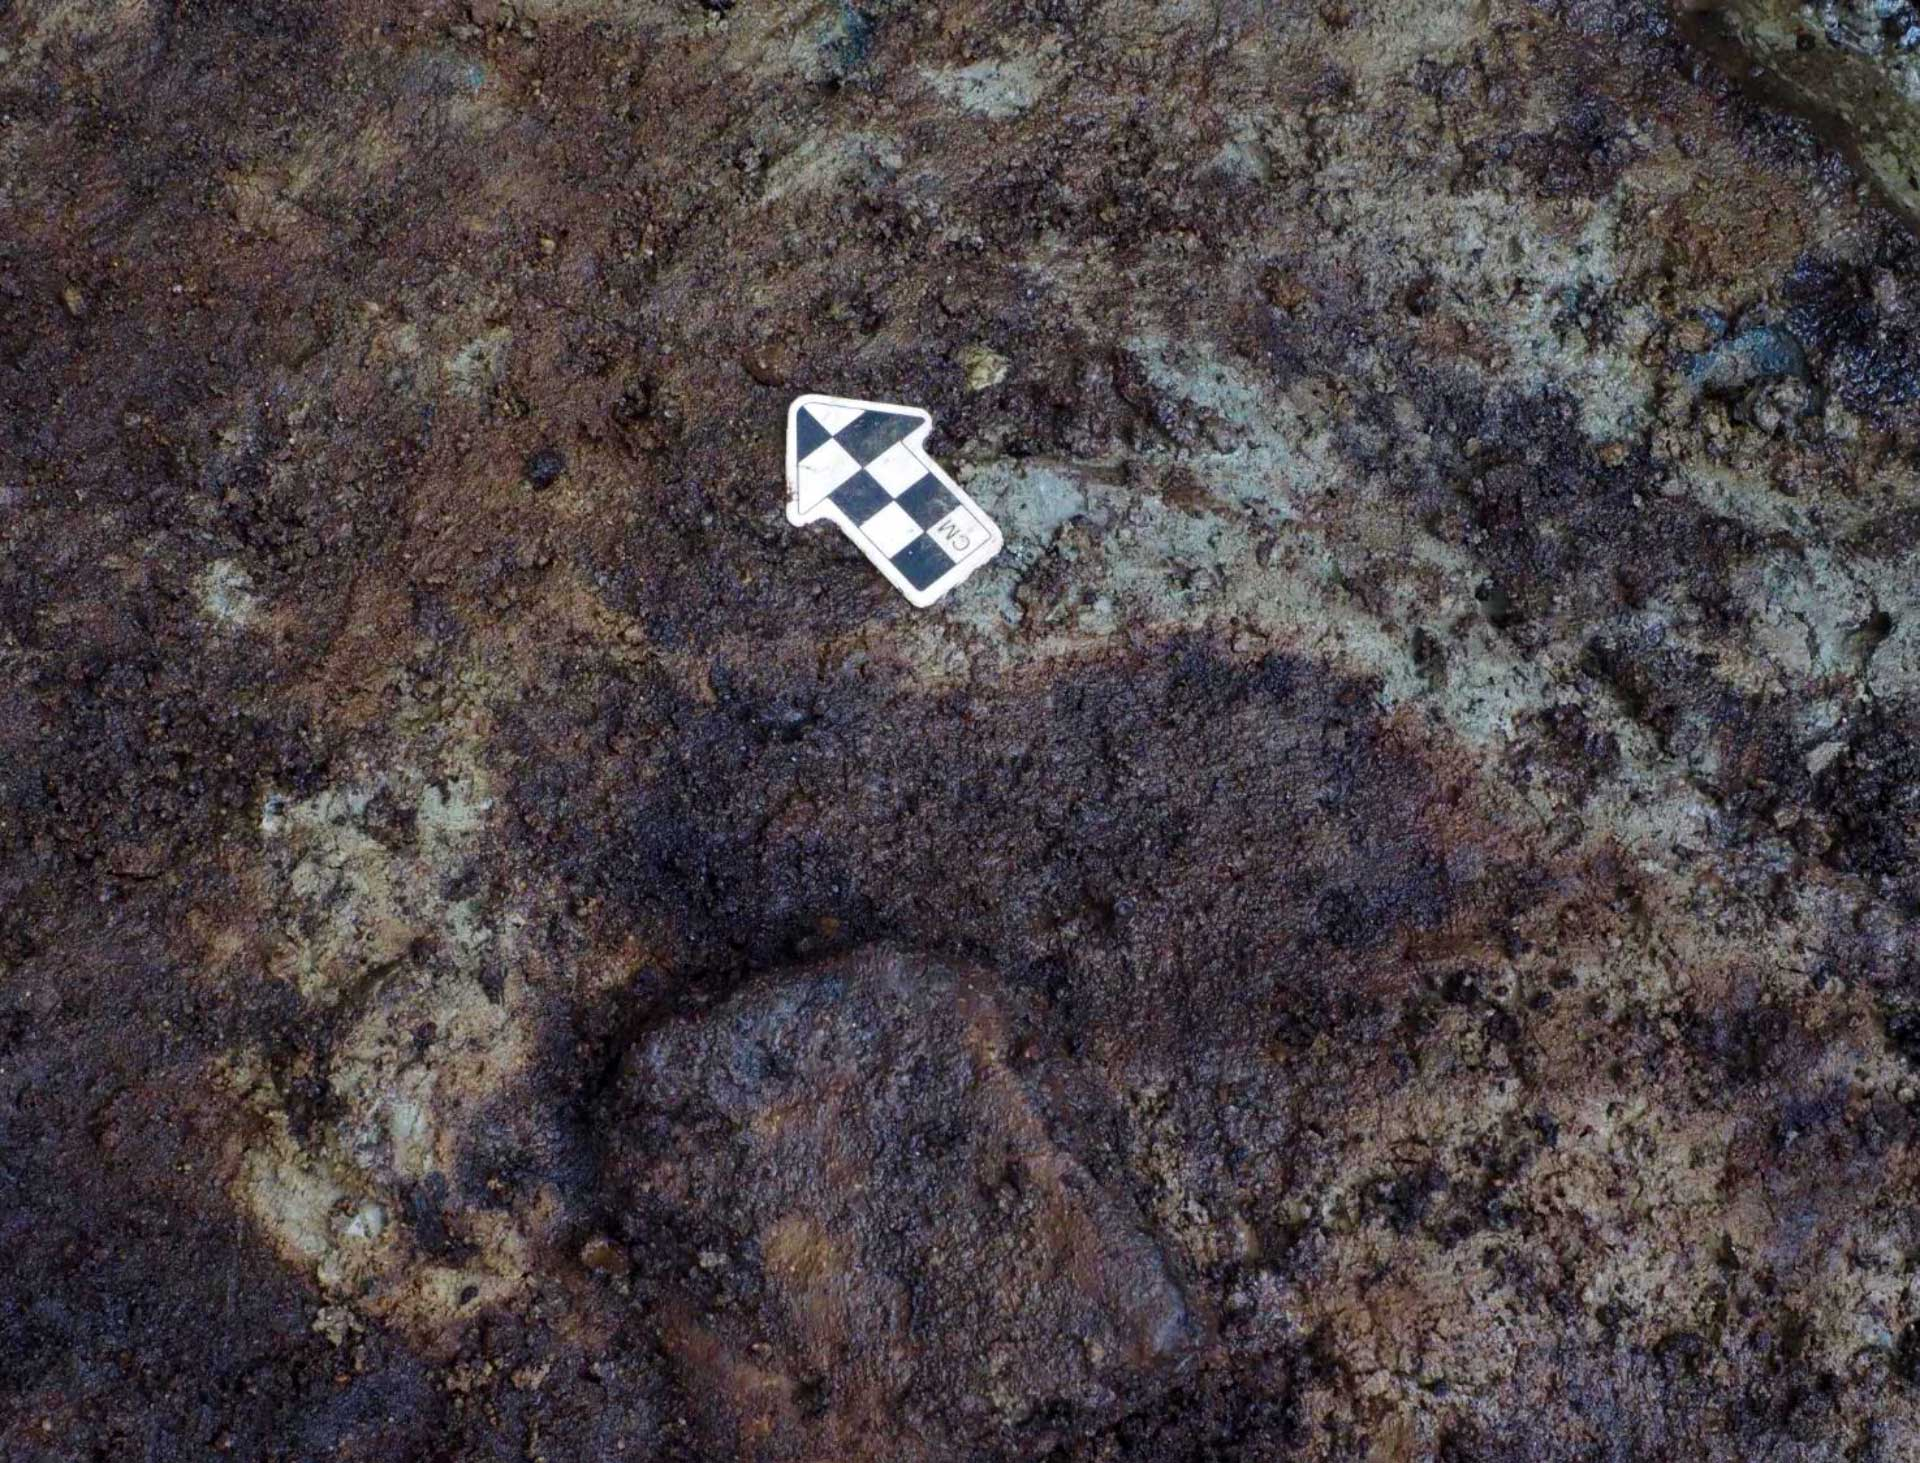 Scientists find 13000-year-old footprints in Canada